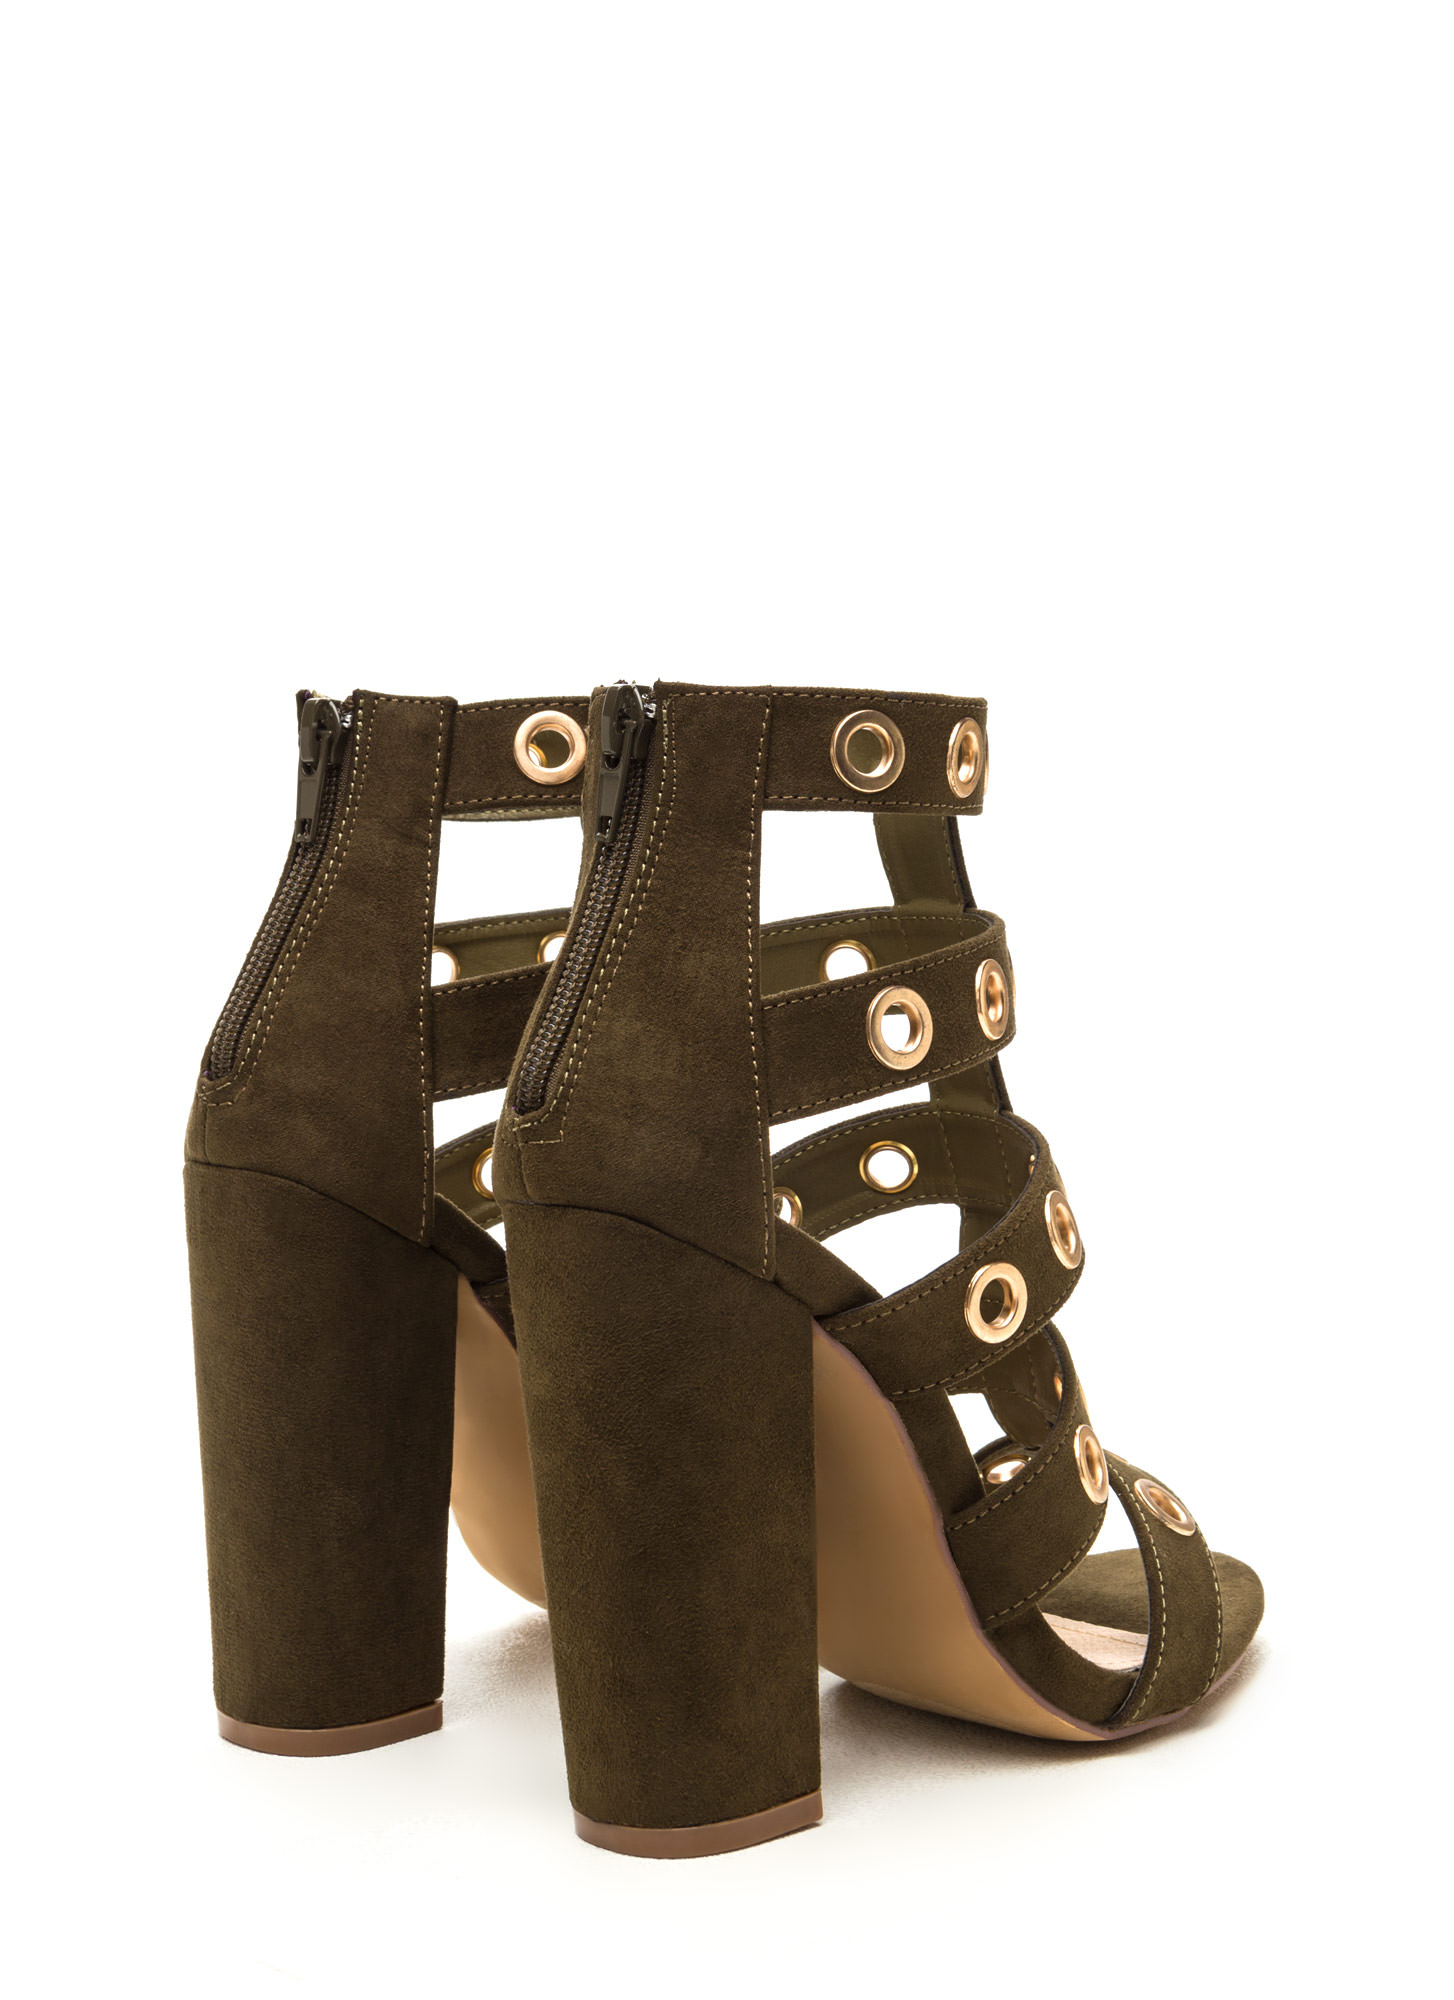 Hole-d It Together Chunky Caged Heels OLIVE